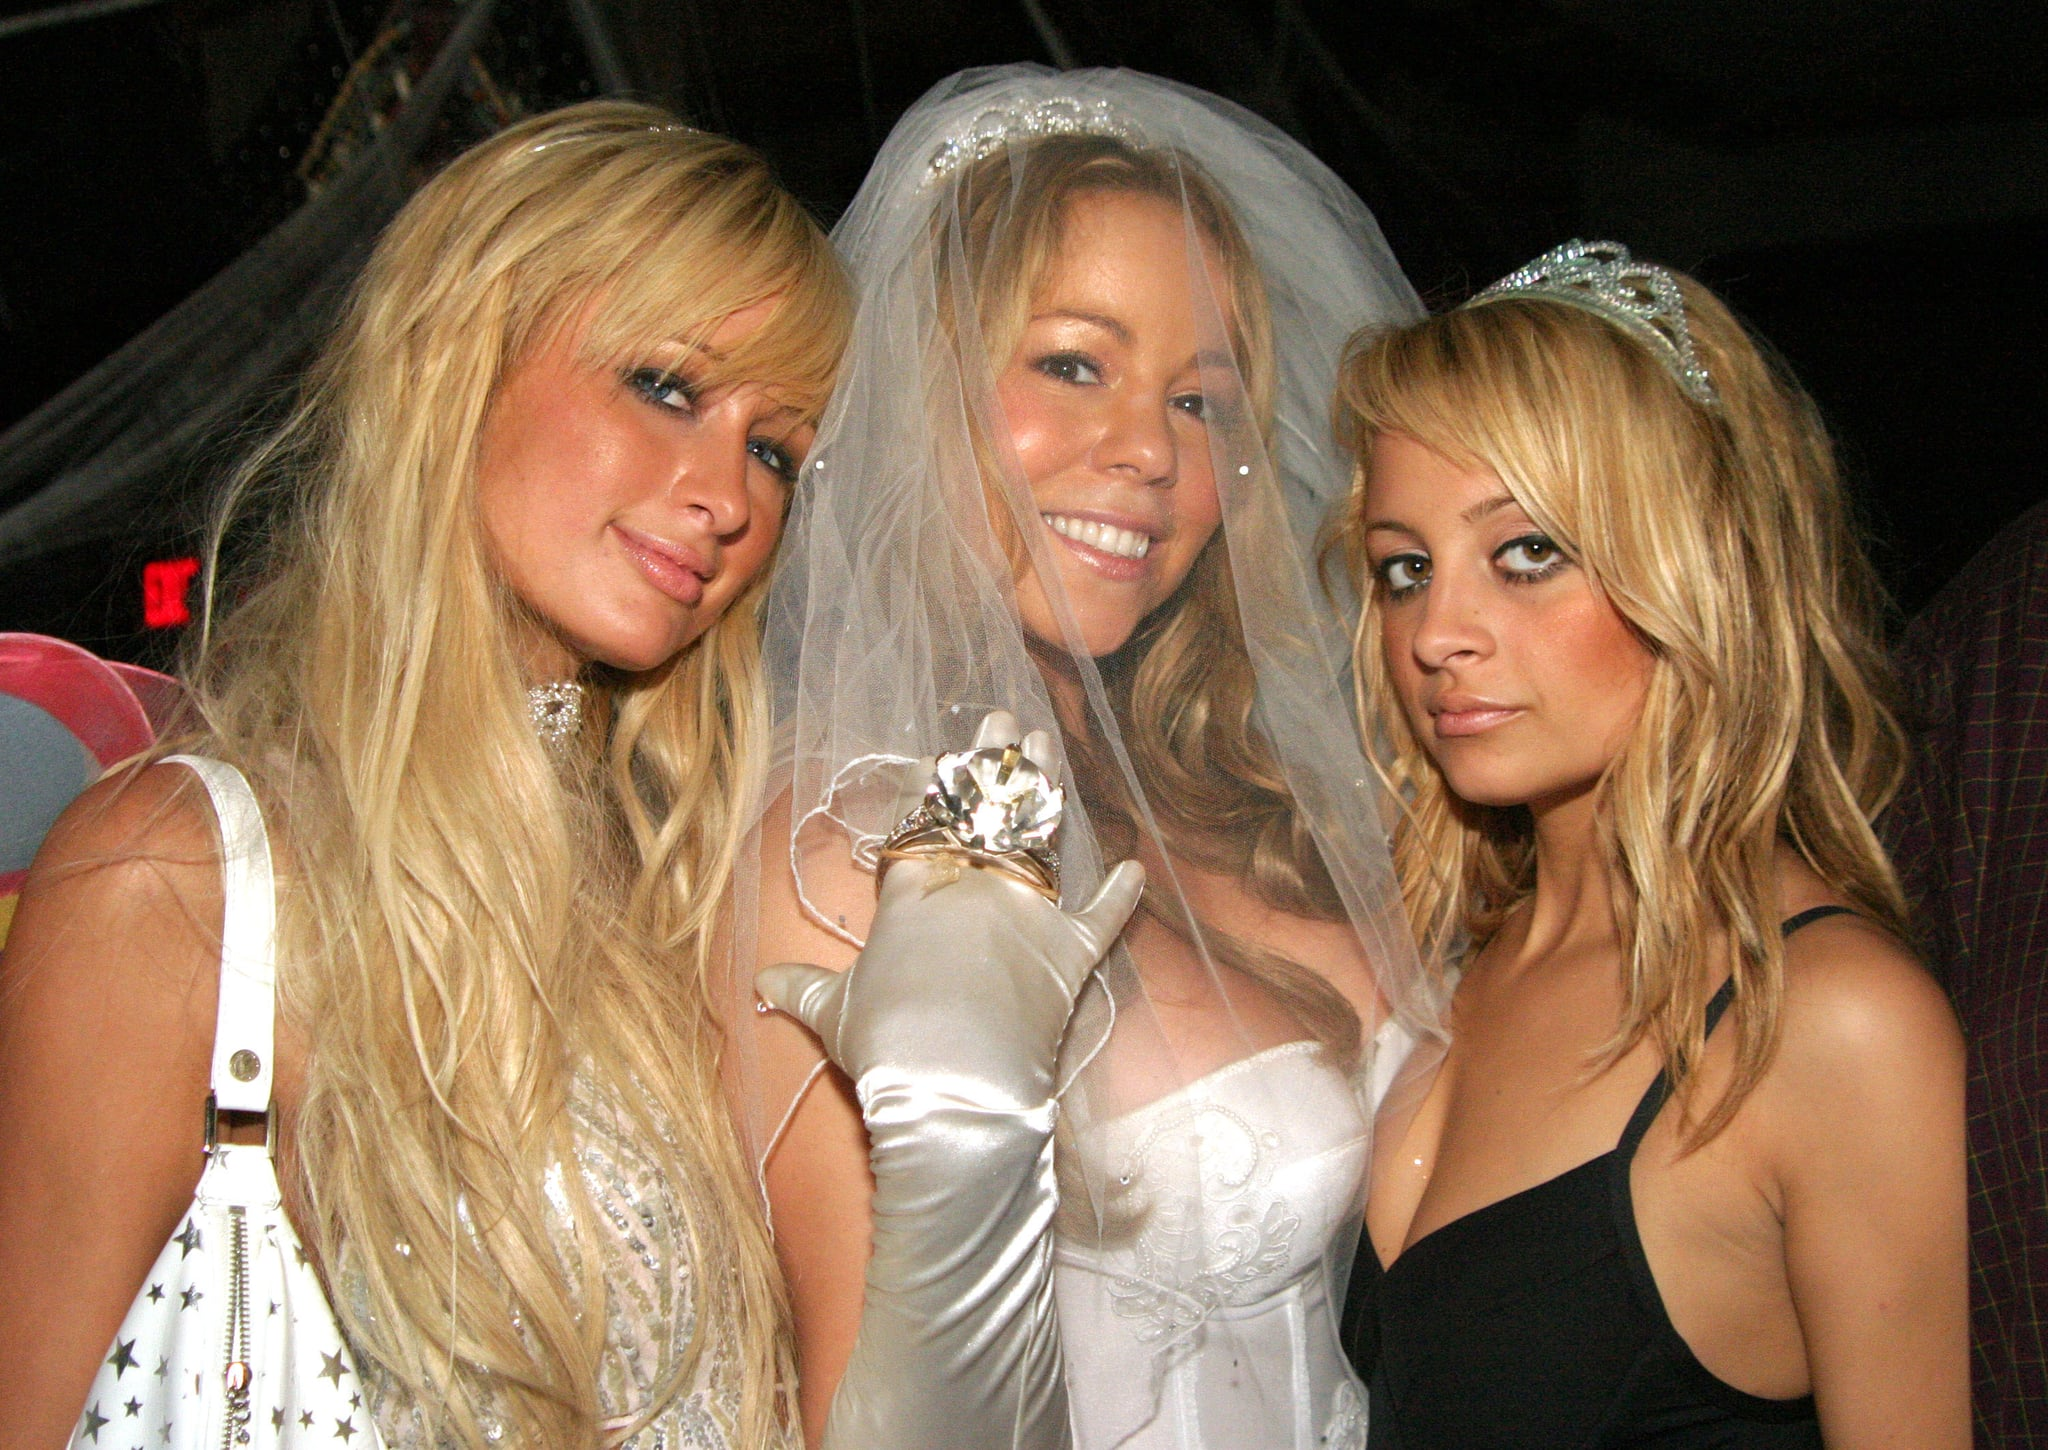 Nicole and Paris showed up together for Mariah Carey's annual Halloween party in NYC back in October 2004.